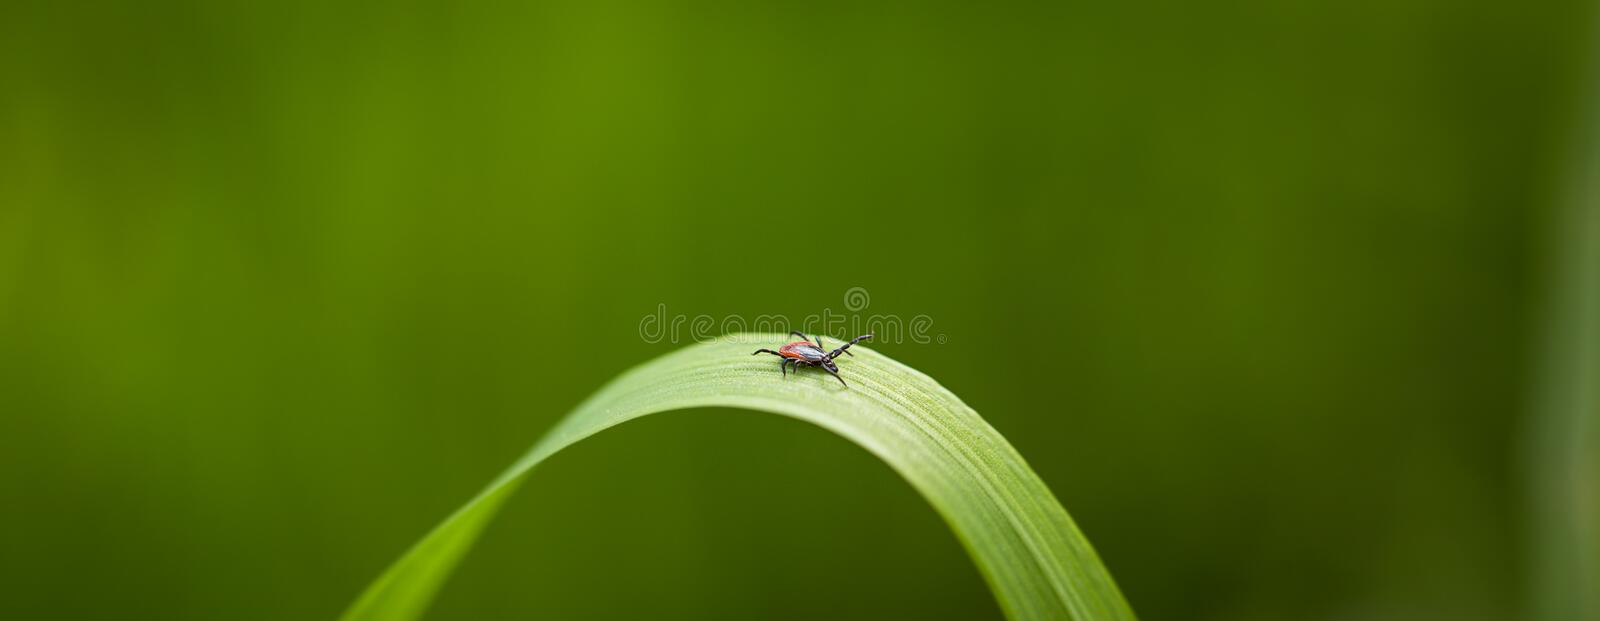 Tick Ixodes ricinus waiting for its victim on a grass blade stock photography